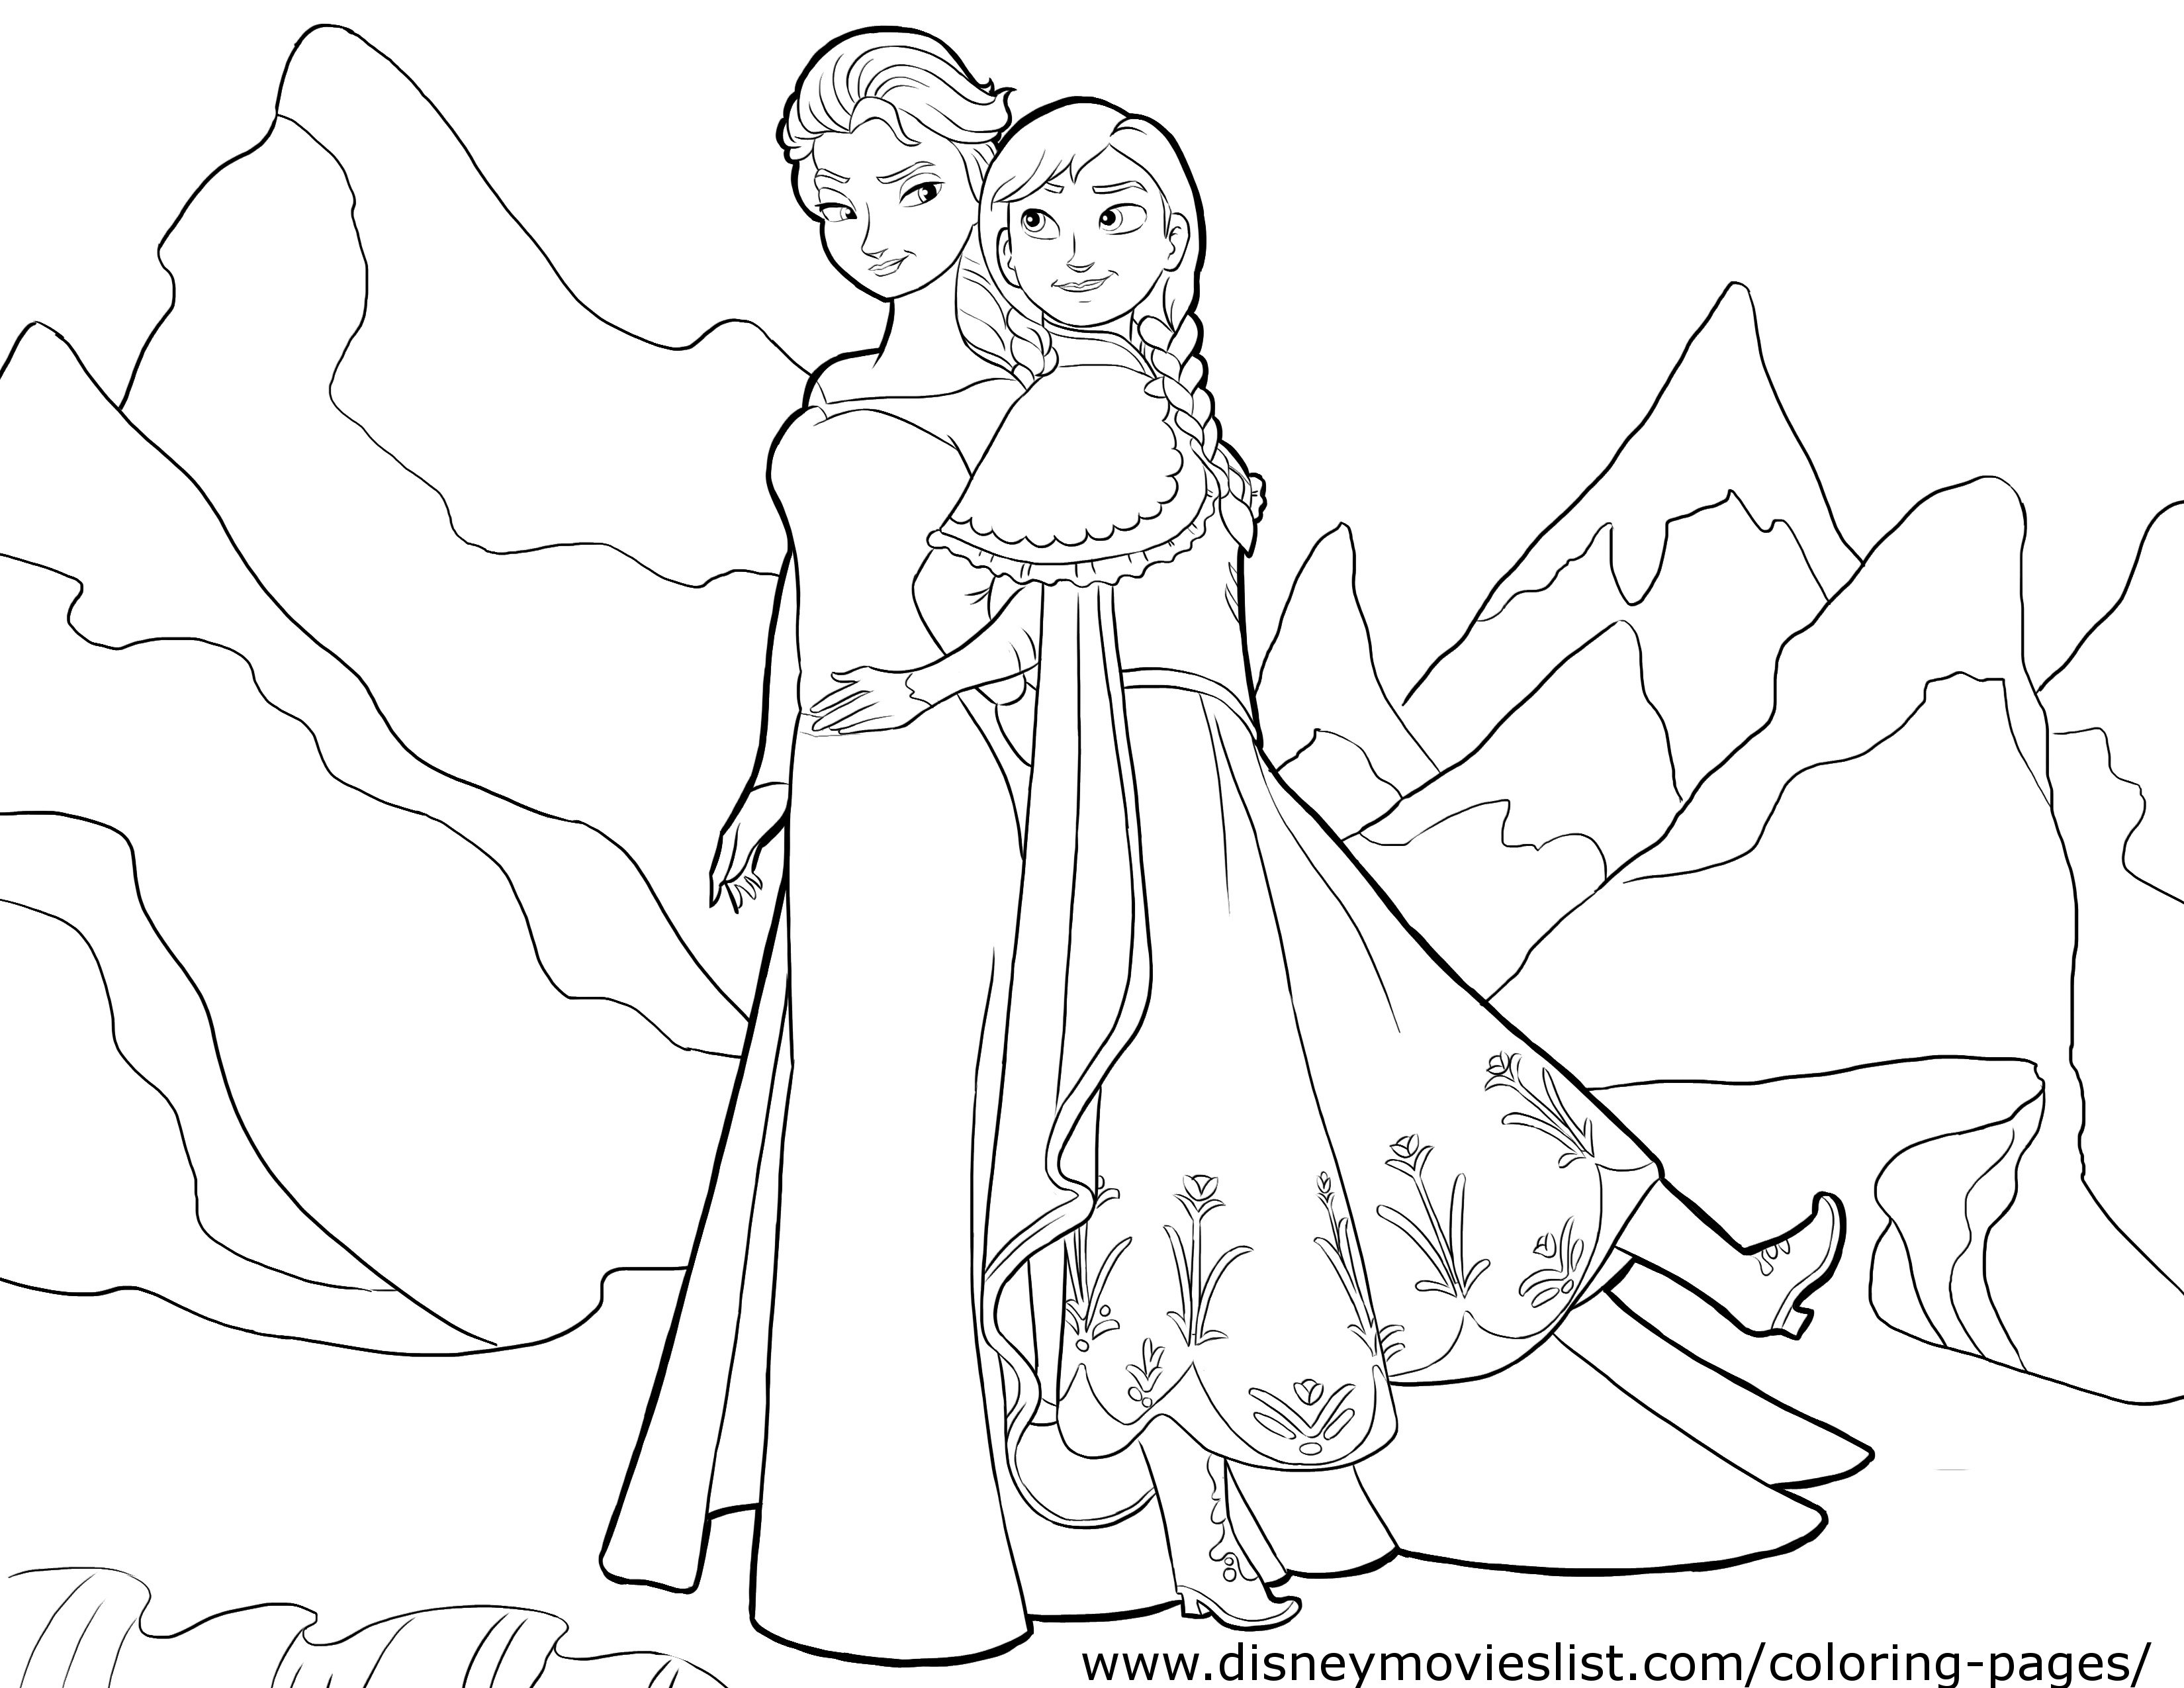 Elsa Coloring Pages For Birthdays Coloring Pages